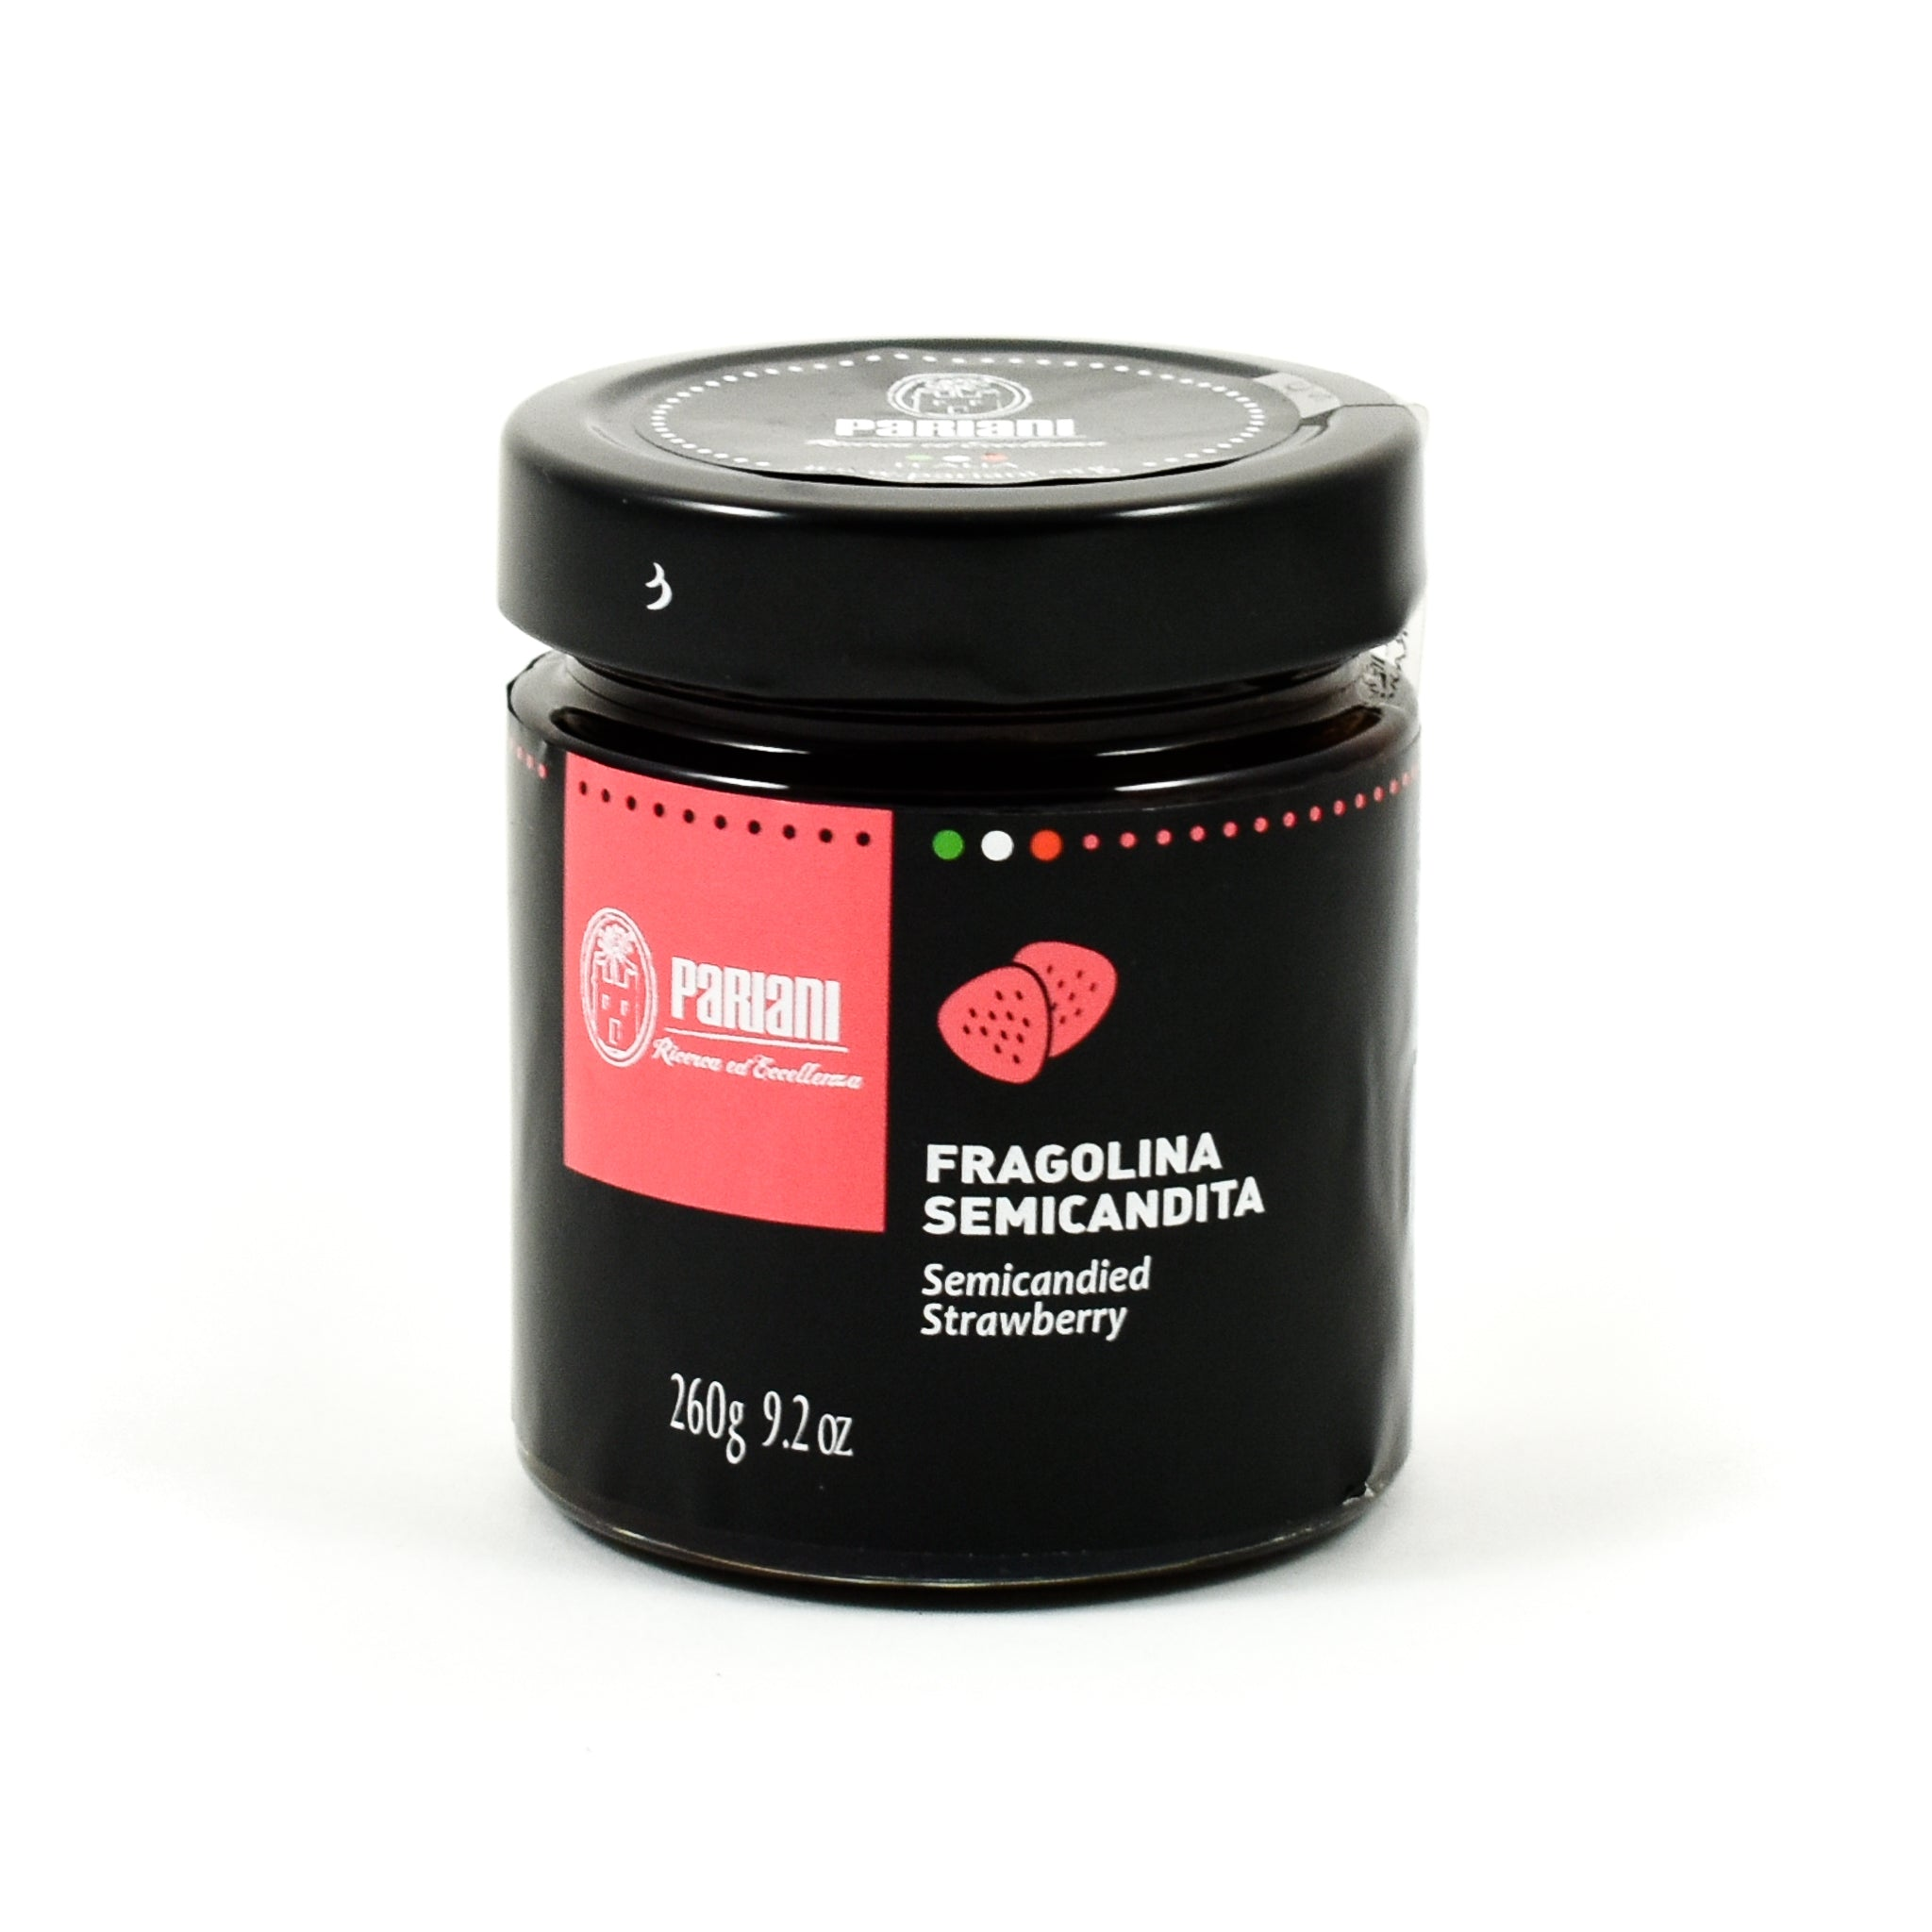 Pariani Semi-Candied Wild Strawberries 260g Ingredients Jam Honey & Preserves Italian Food